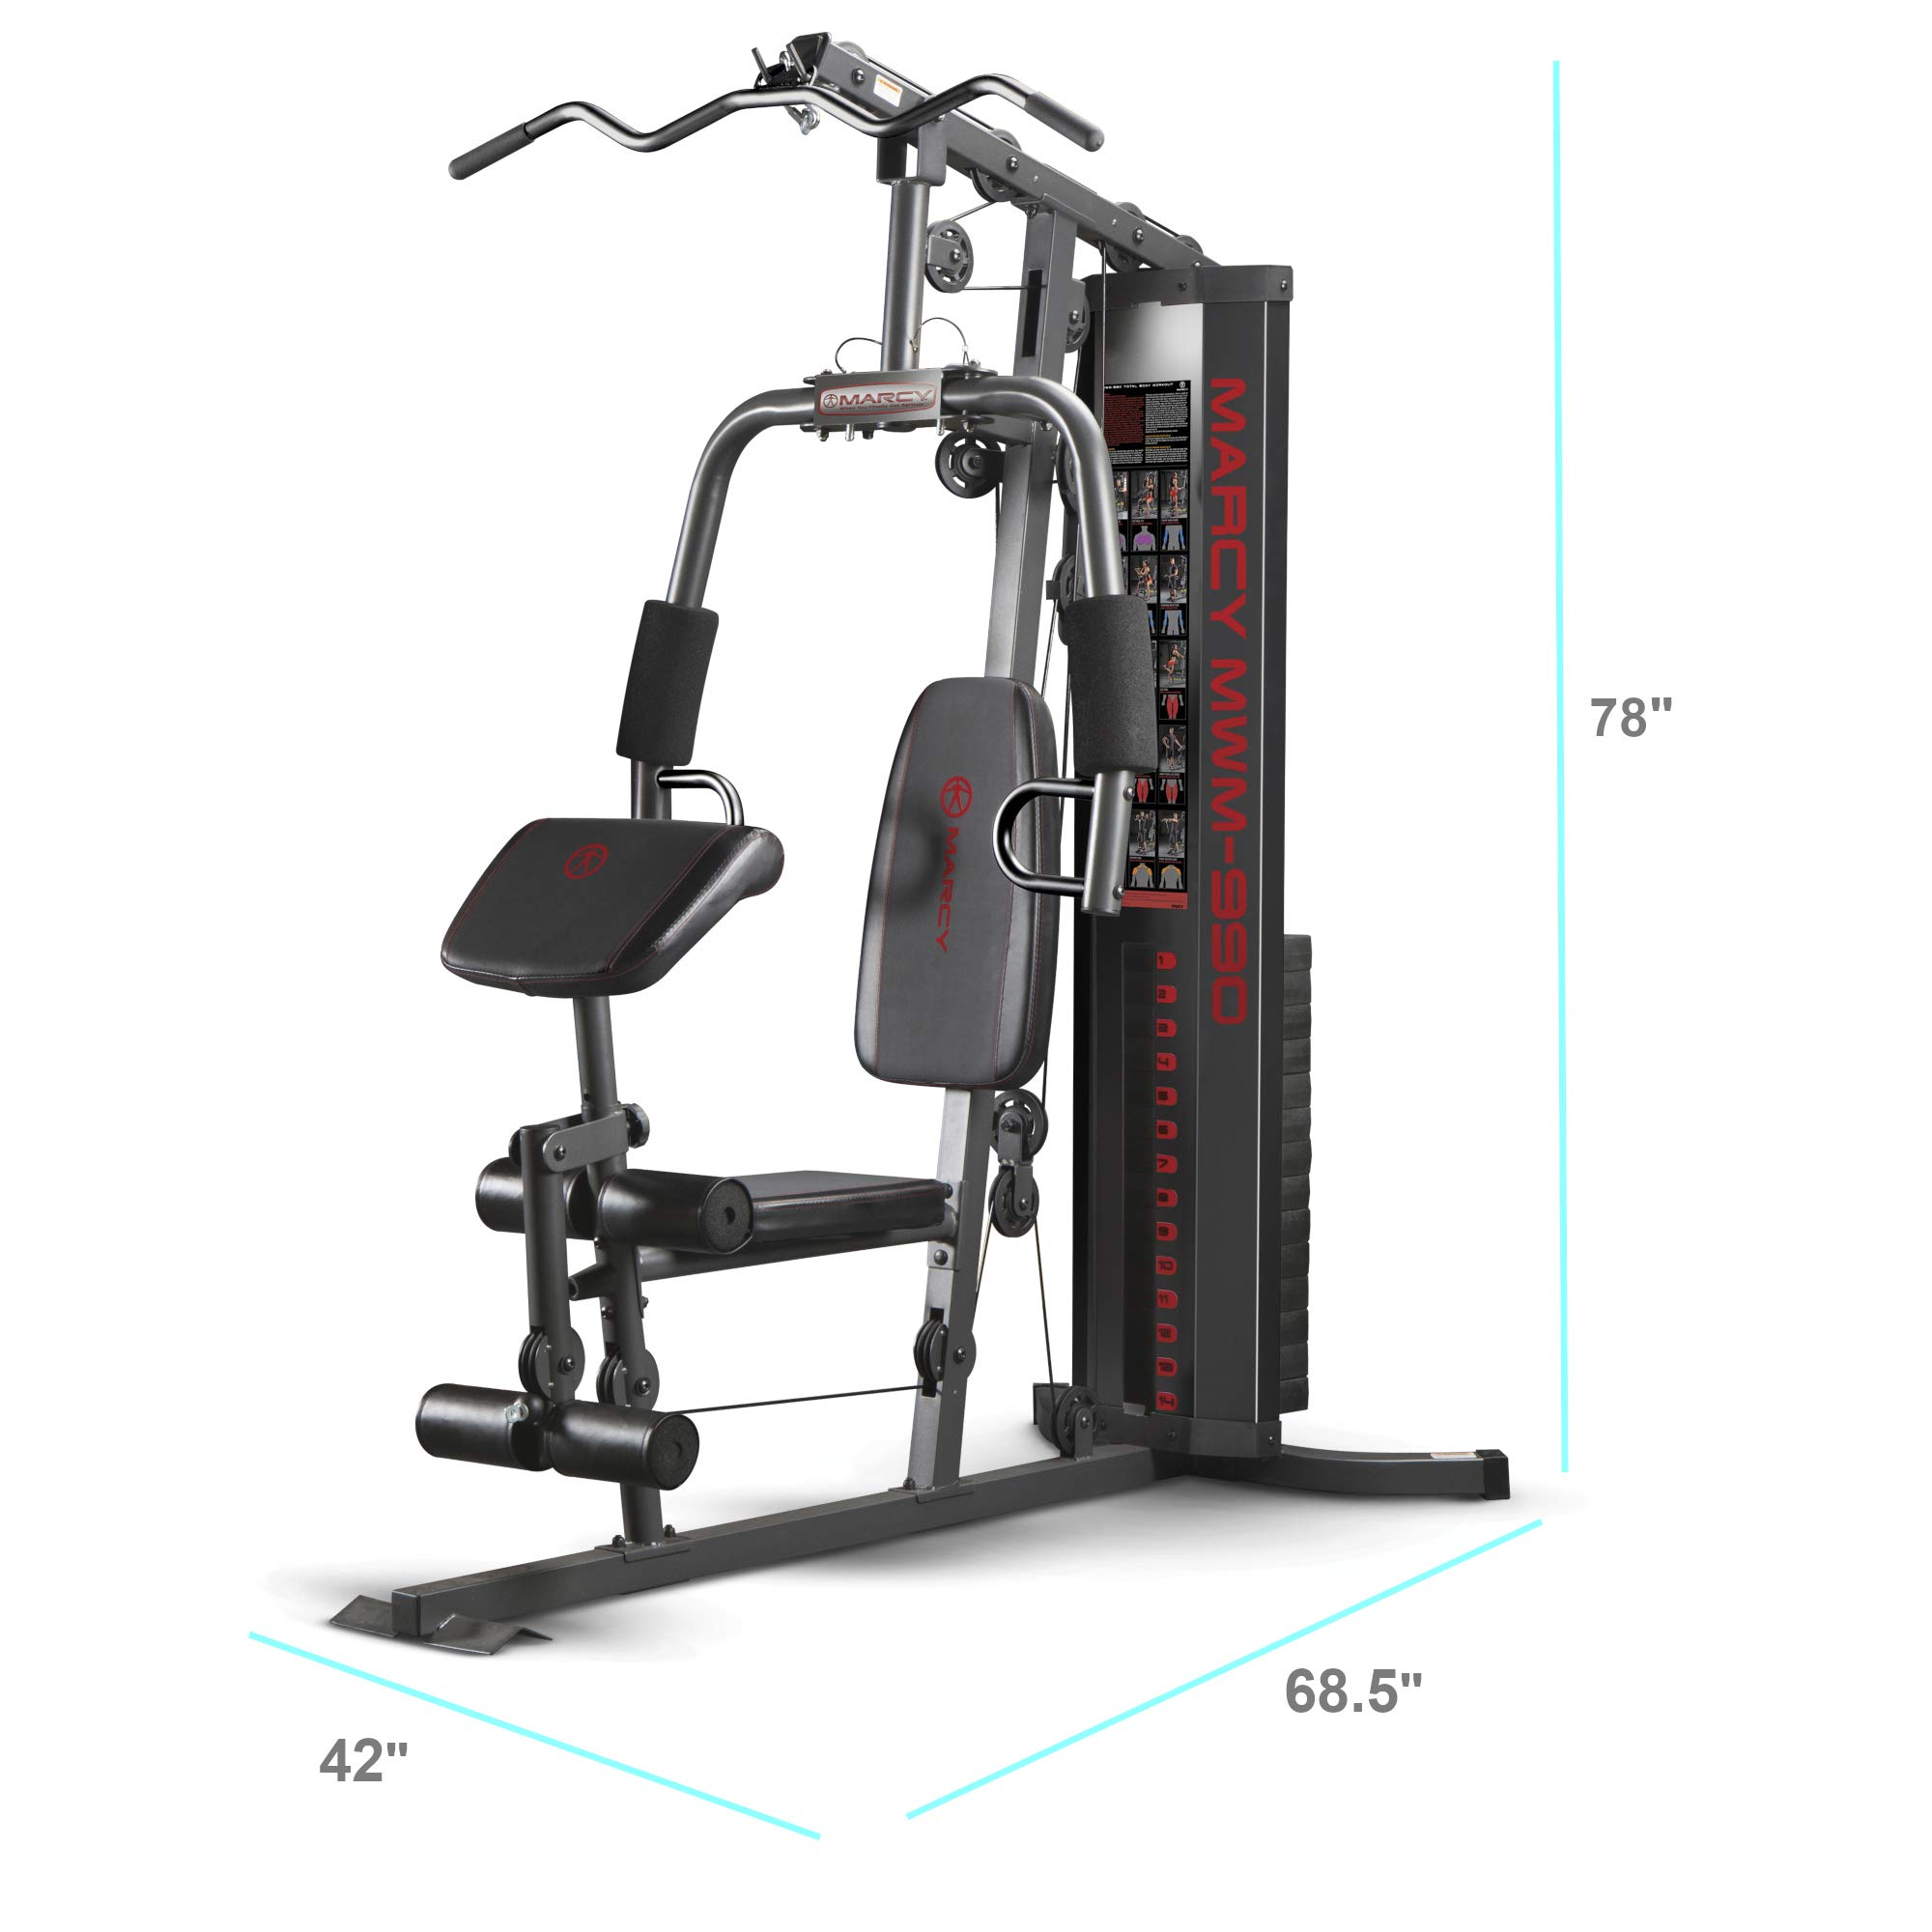 Marcy 150-lb Multifunctional Home Gym Station for Total Body Training MWM-990 by Marcy (Image #1)